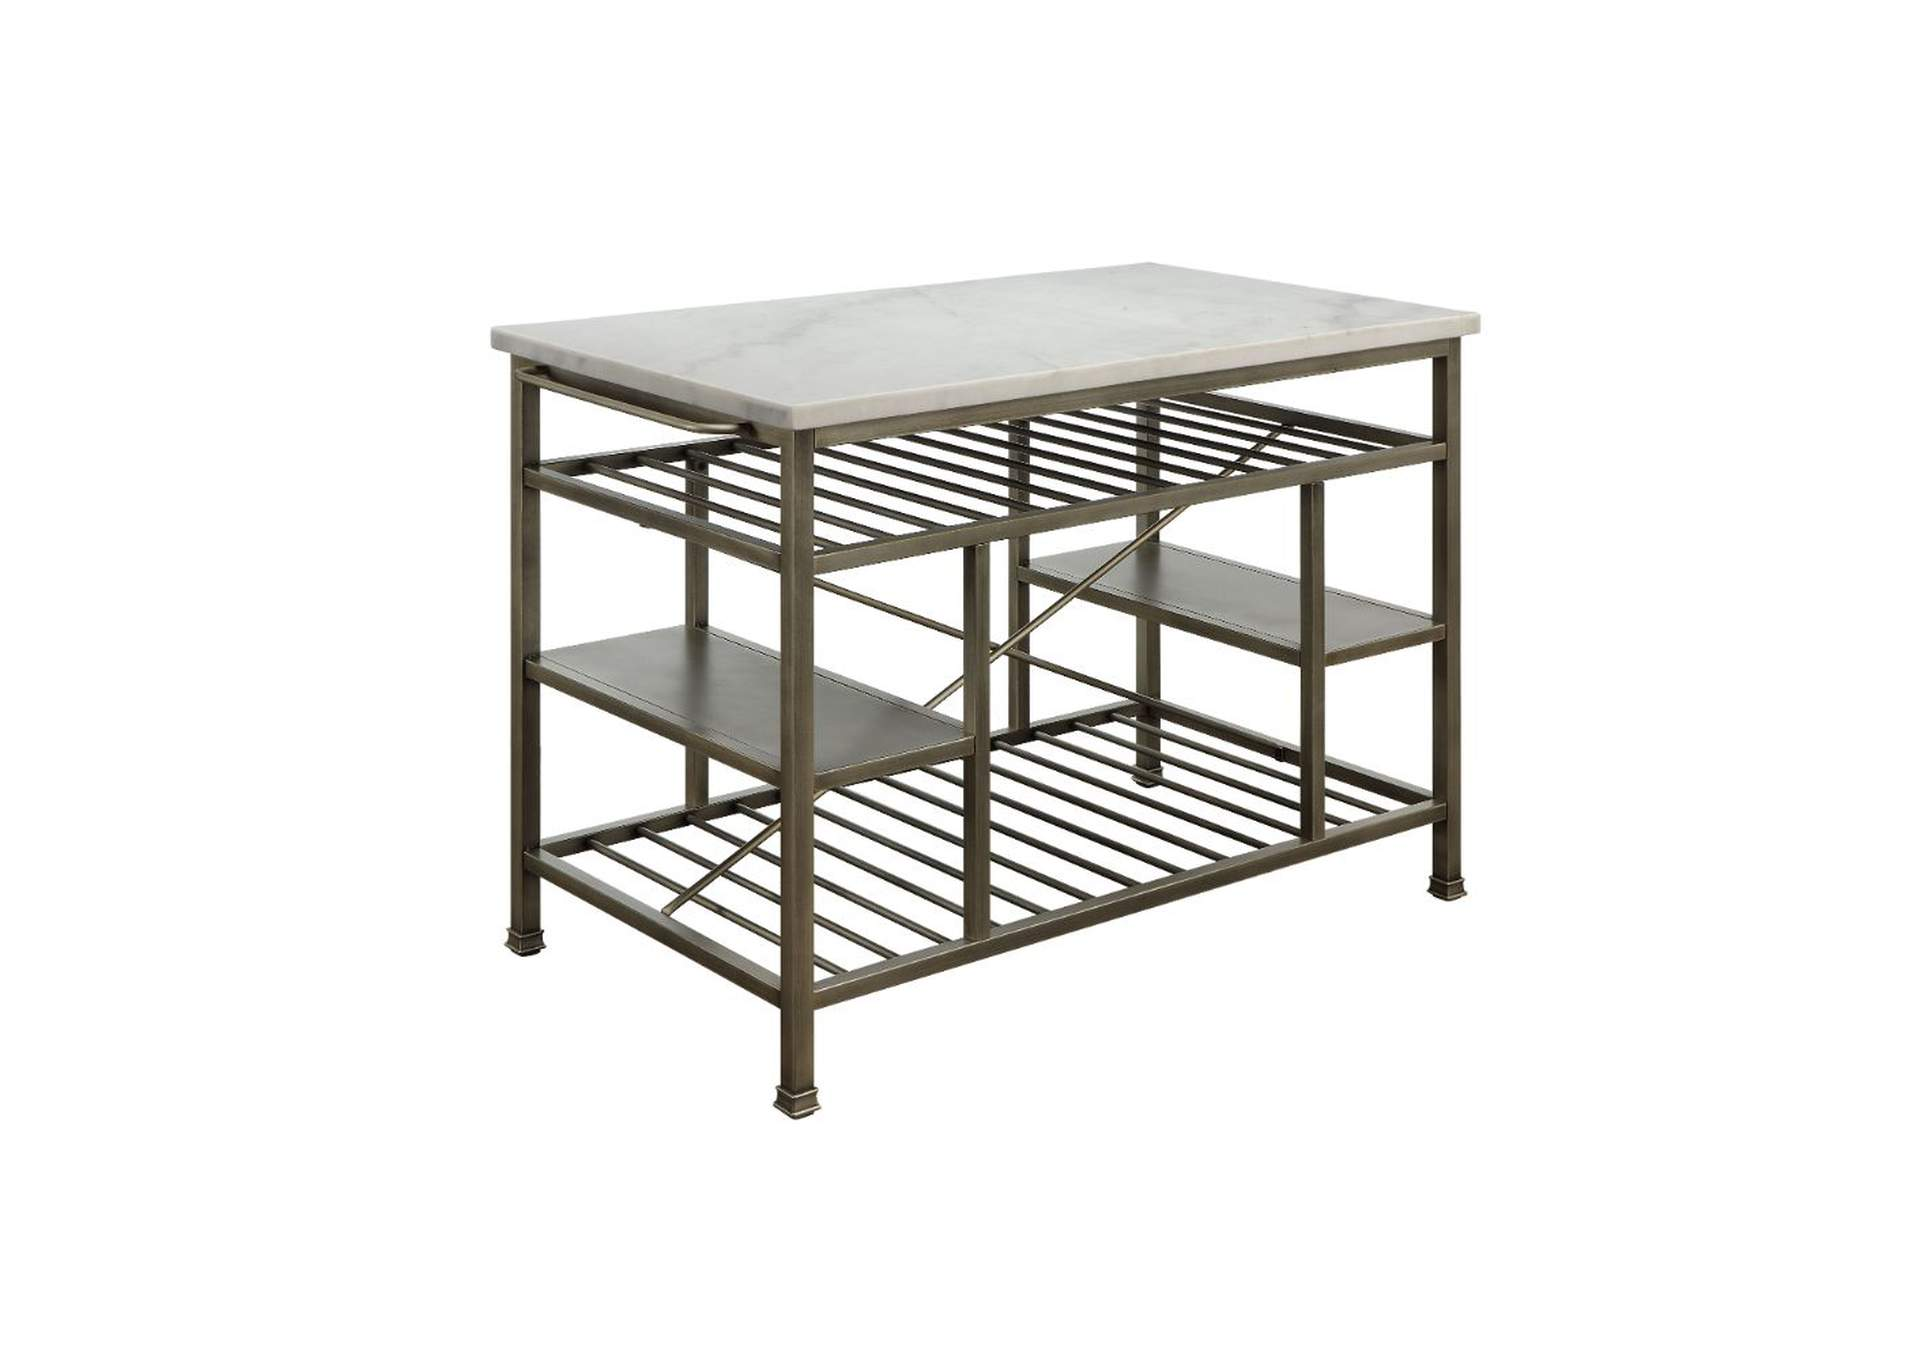 Lanzo Silver Kitchen Island,Acme